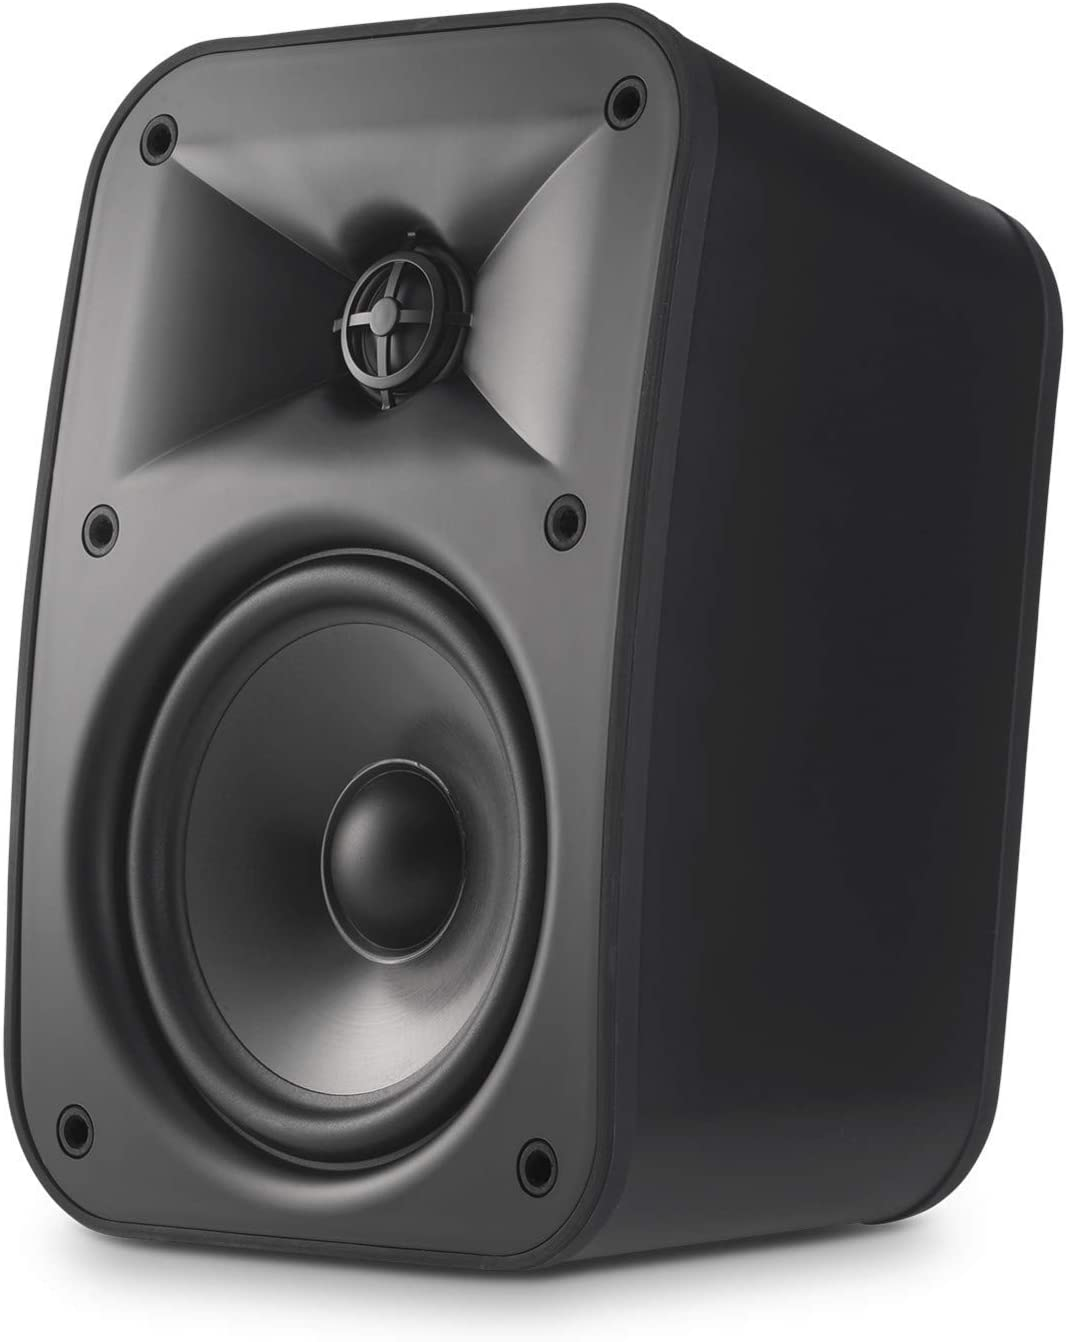 """JBL Control Free shipping on posting reviews X Wired 5.25"""" Speakers Popular standard - Black Indoor Outdoor"""